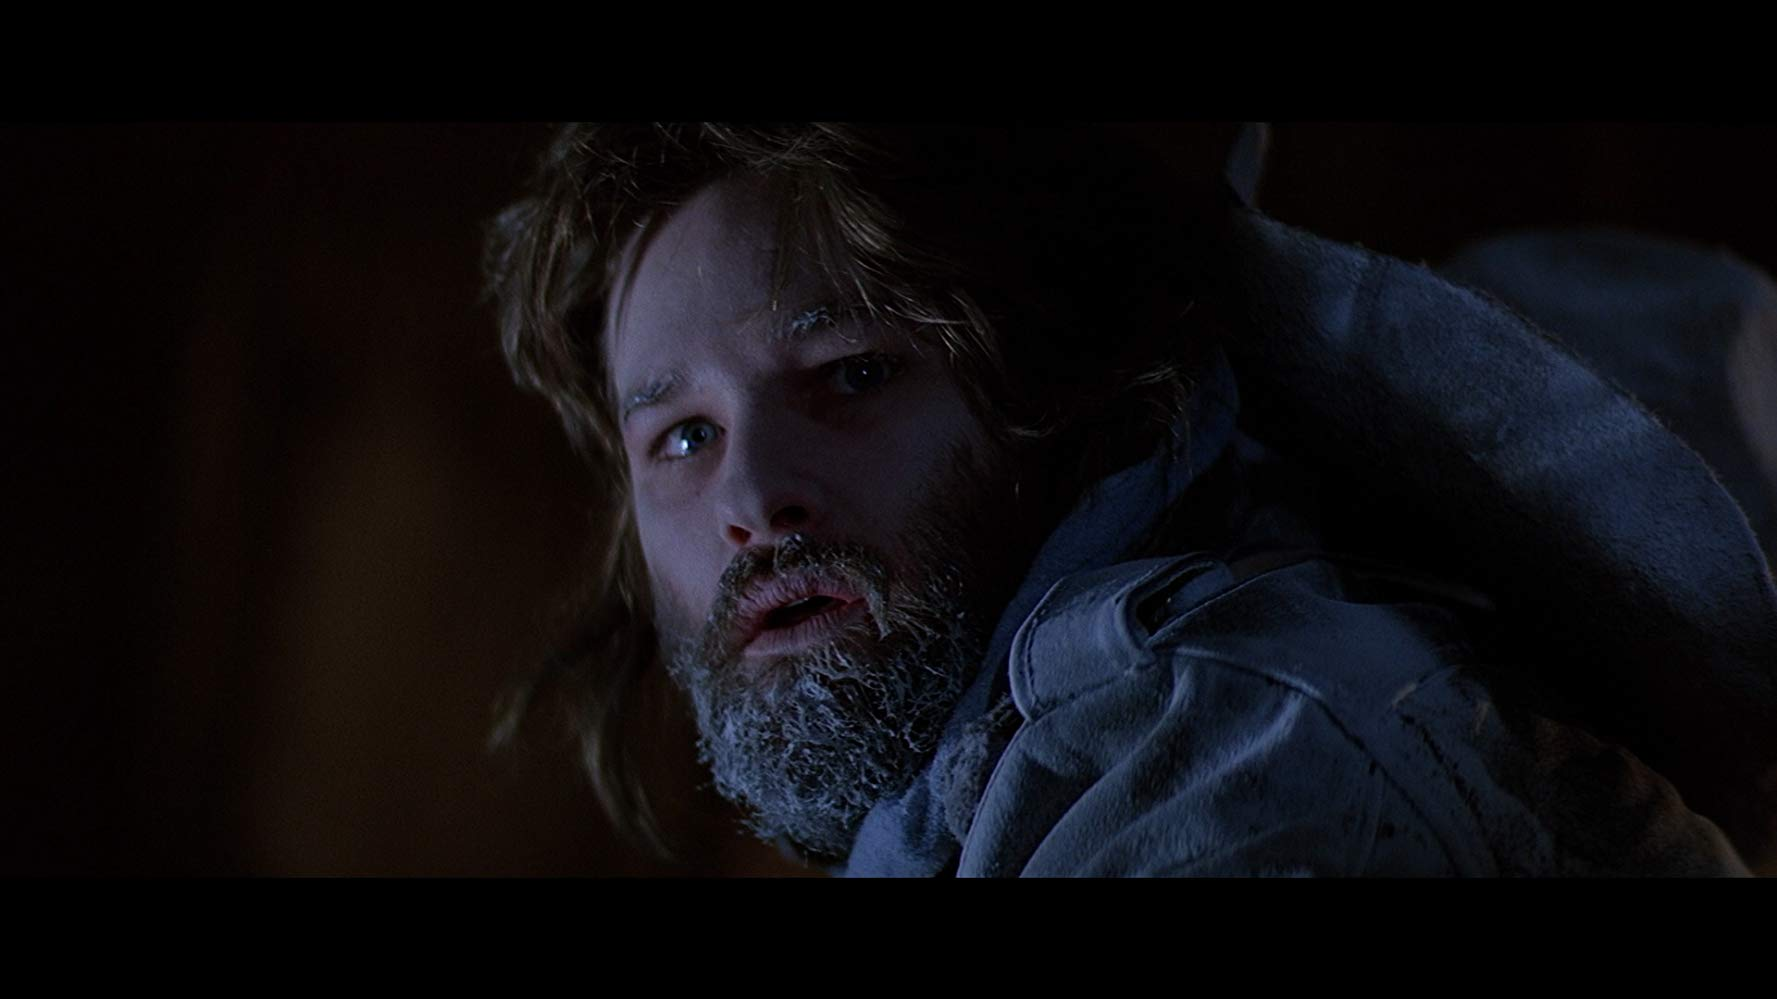 RJ MacReady from The Thing